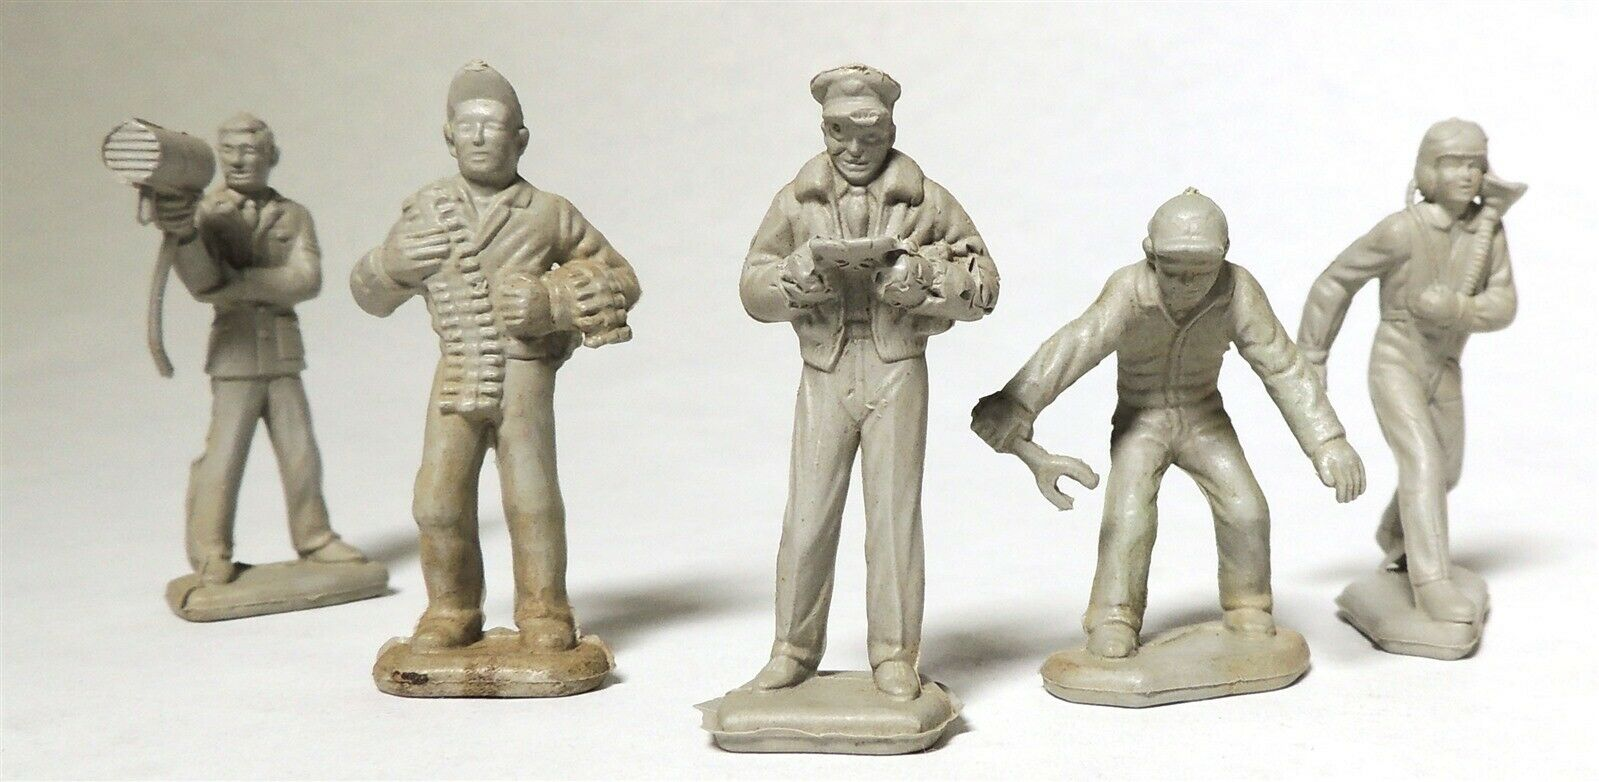 A0609 VINTAGE Lot Of 5 Air Force Figures By MARX Cape Canaveral 1954  - $10.00